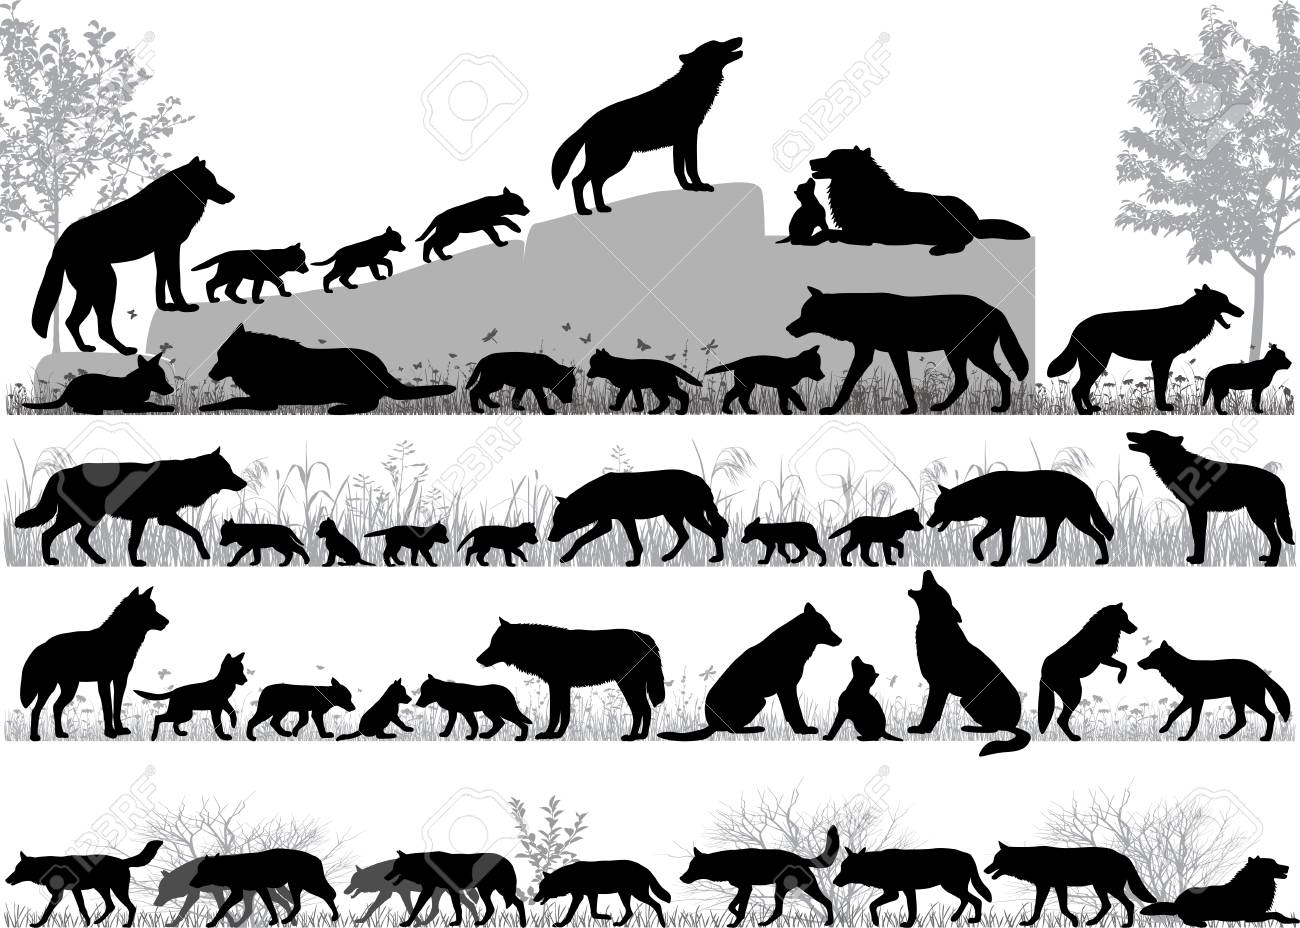 Silhouettes of wolves and its cubs outdoors - 102668175